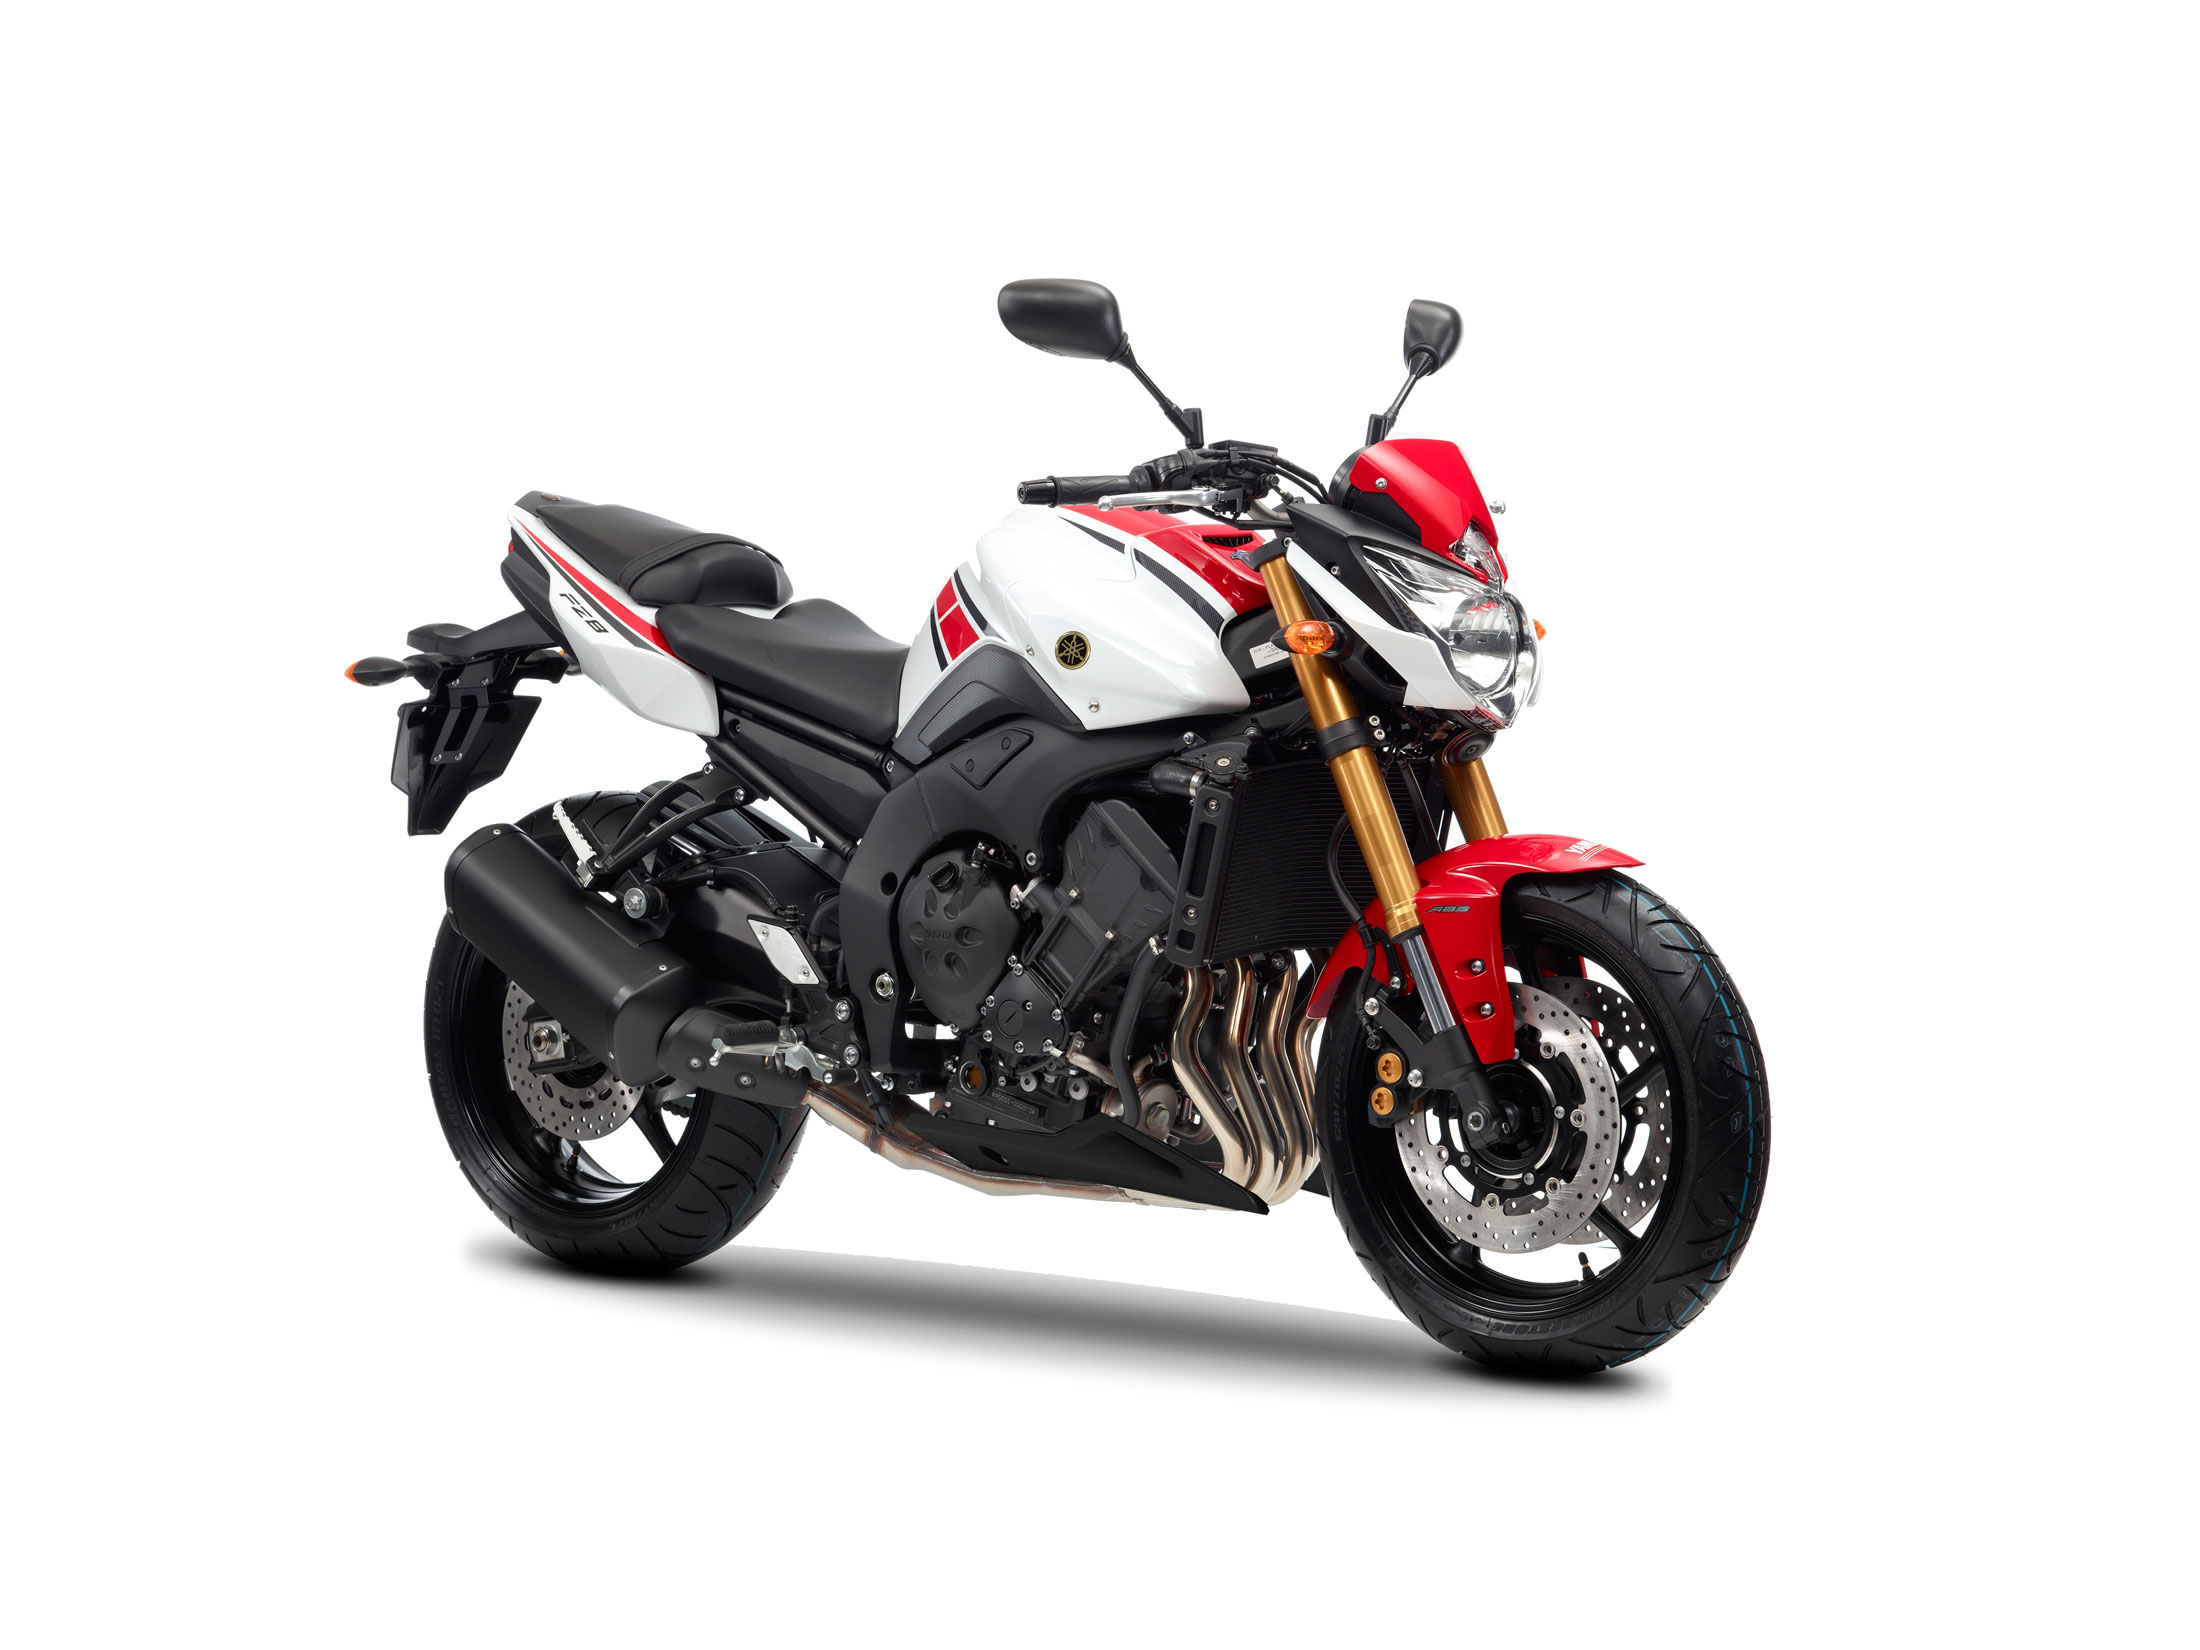 yamaha fz8 world gp 50th anniversary edition specs 2011 2012 autoevolution. Black Bedroom Furniture Sets. Home Design Ideas